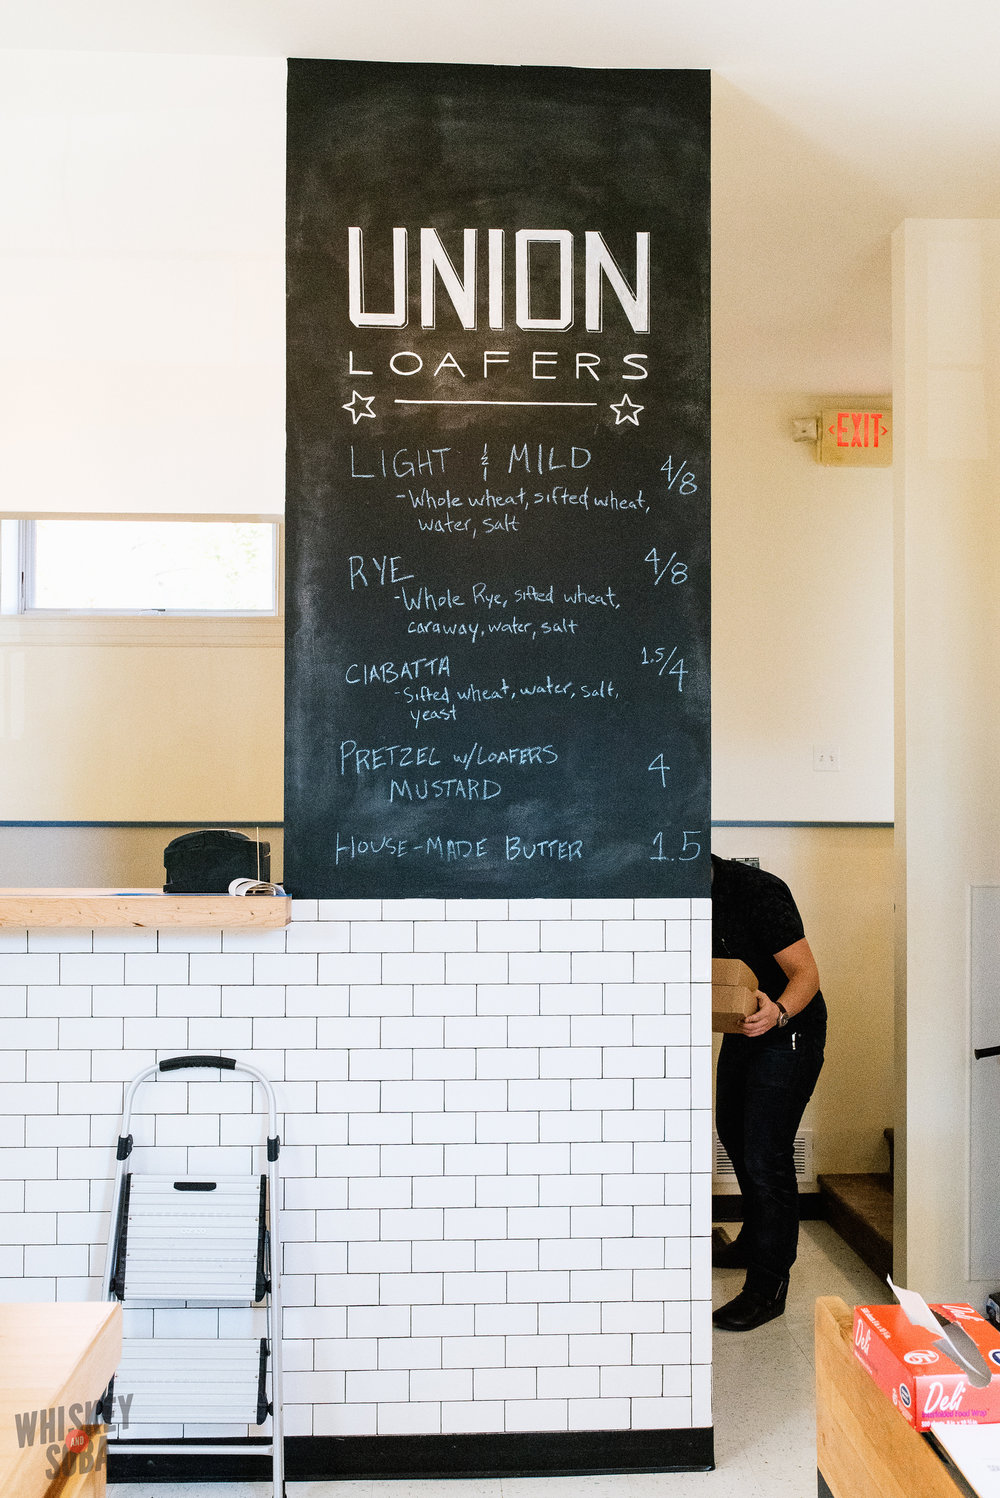 union loafers st.louis menu